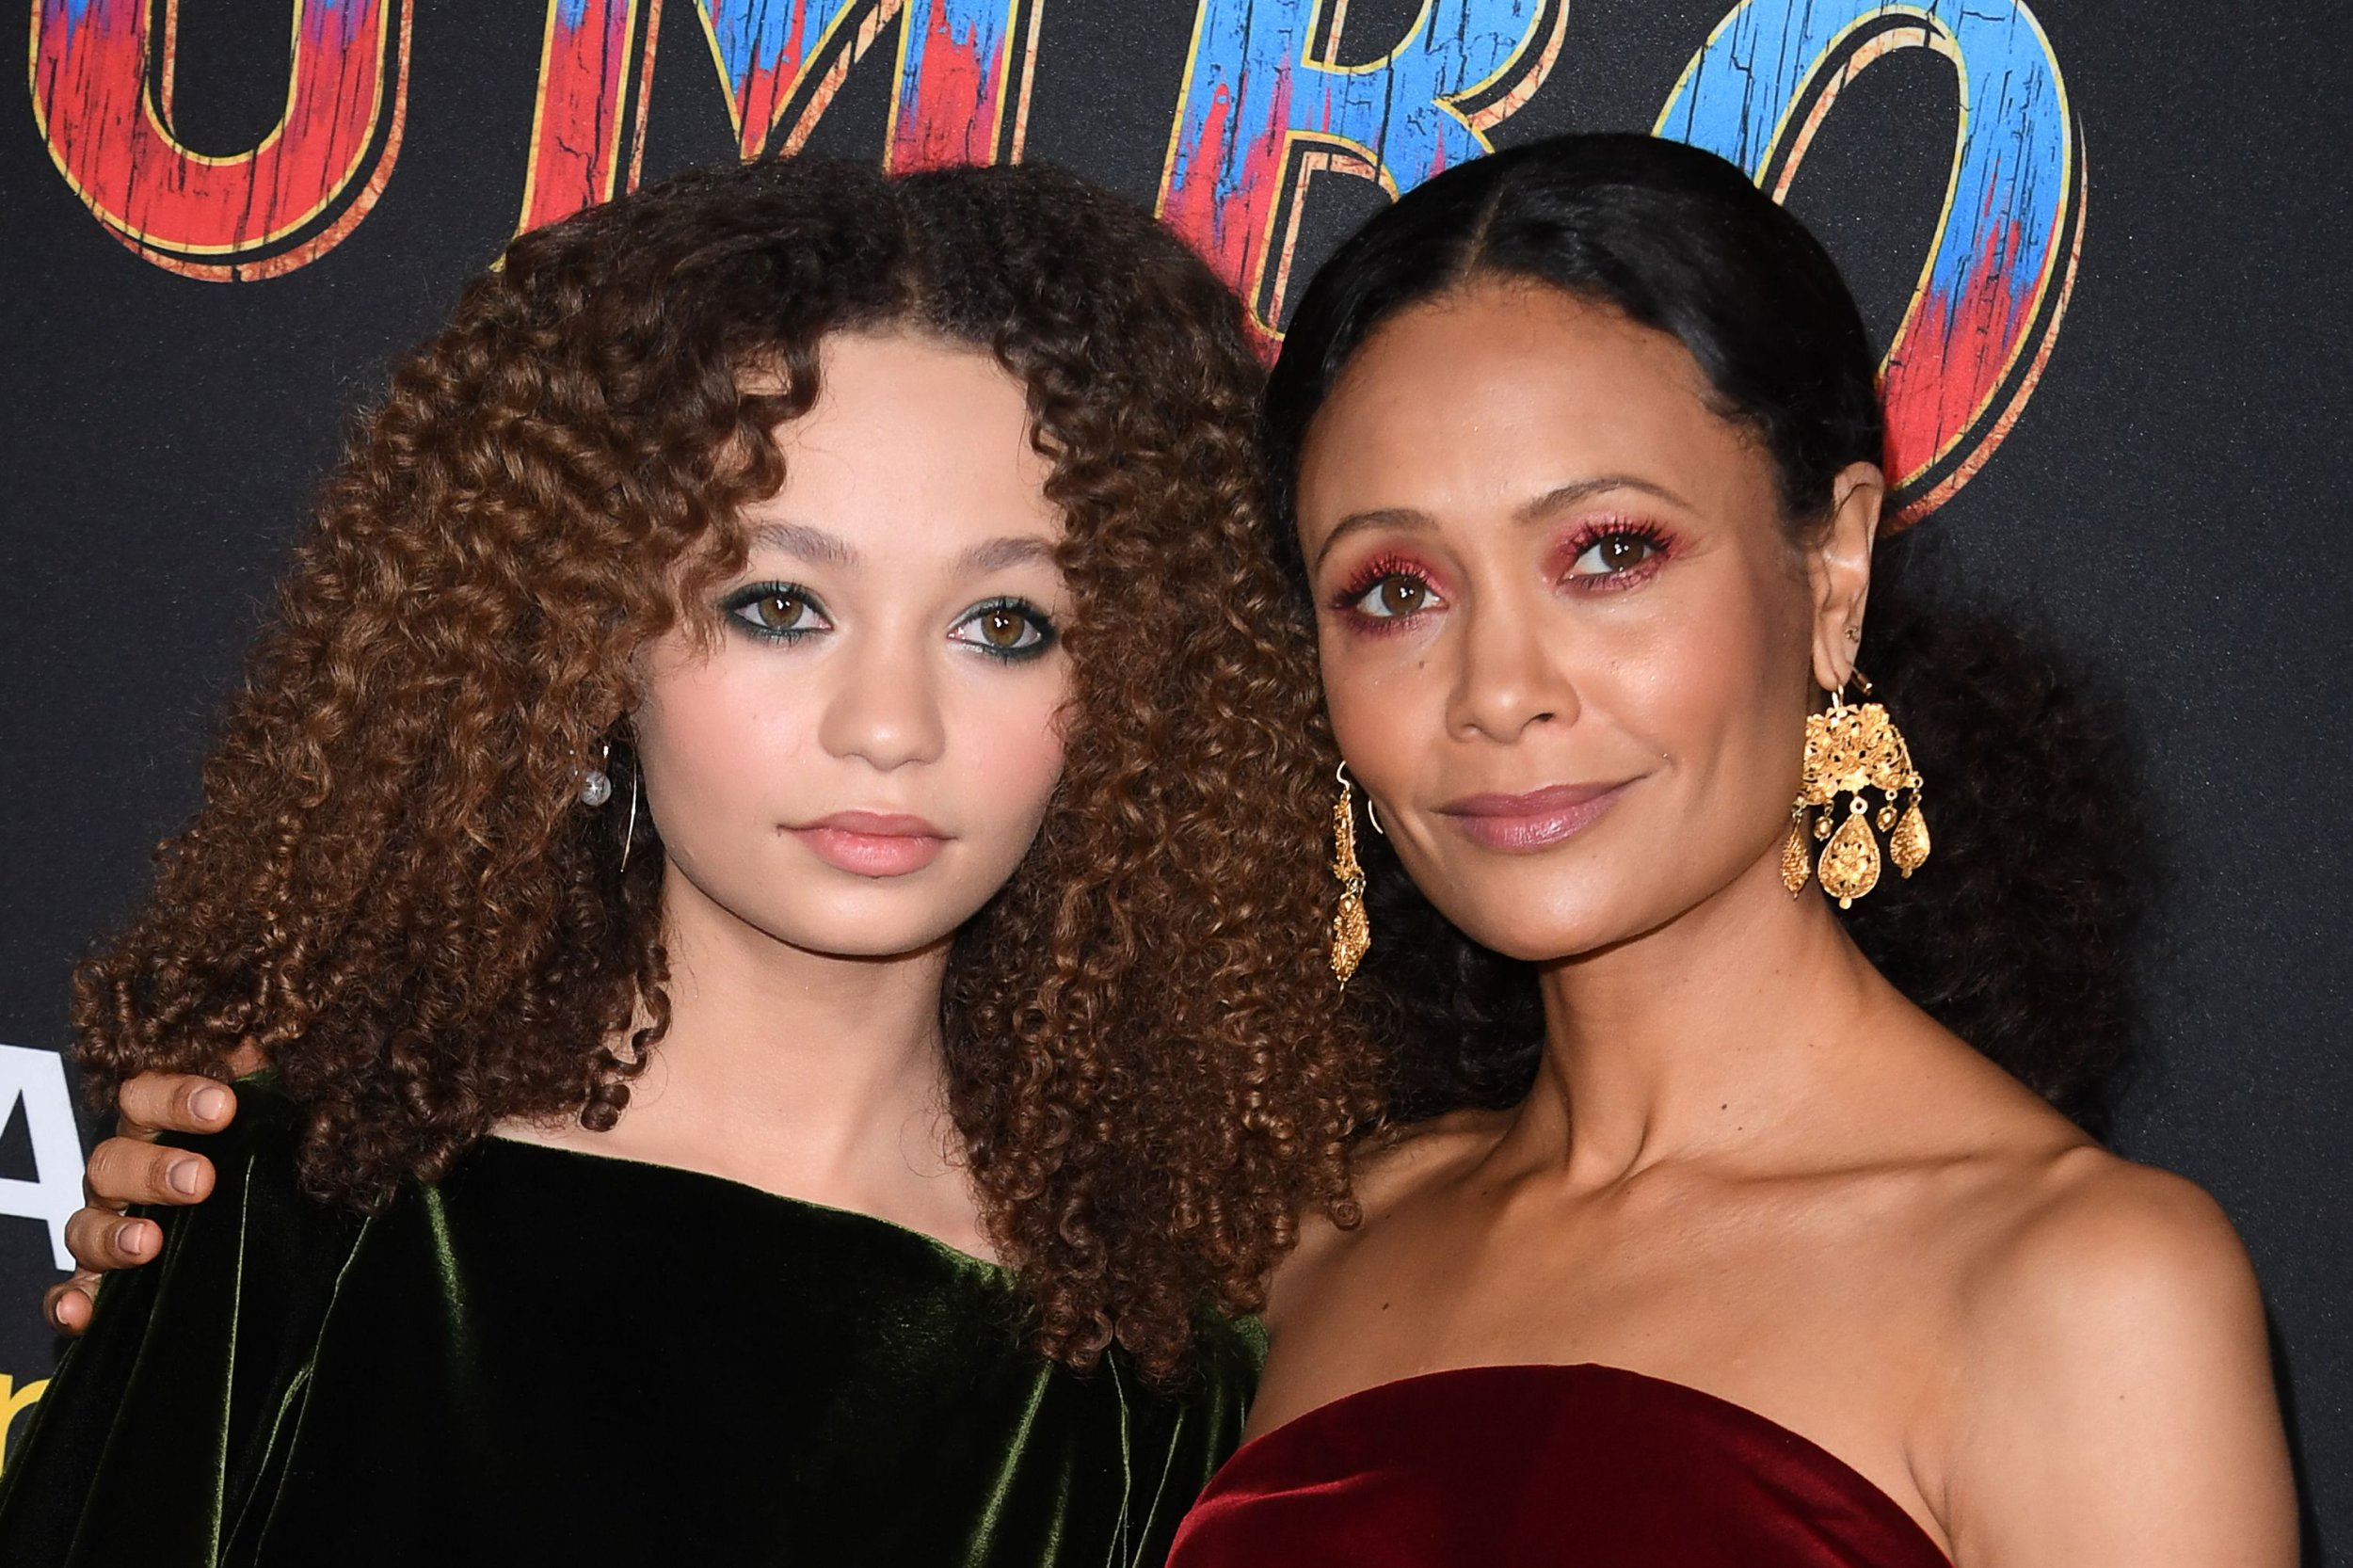 """US actress Nico Parker (L) and her mom actress Thandie Newton (R) arrive for the world premiere of Disney's """"Dumbo"""" at El Capitan theatre on March 11, 2019 in Hollywood. (Photo by Robyn Beck / AFP) (Photo credit should read ROBYN BECK/AFP/Getty Images)"""